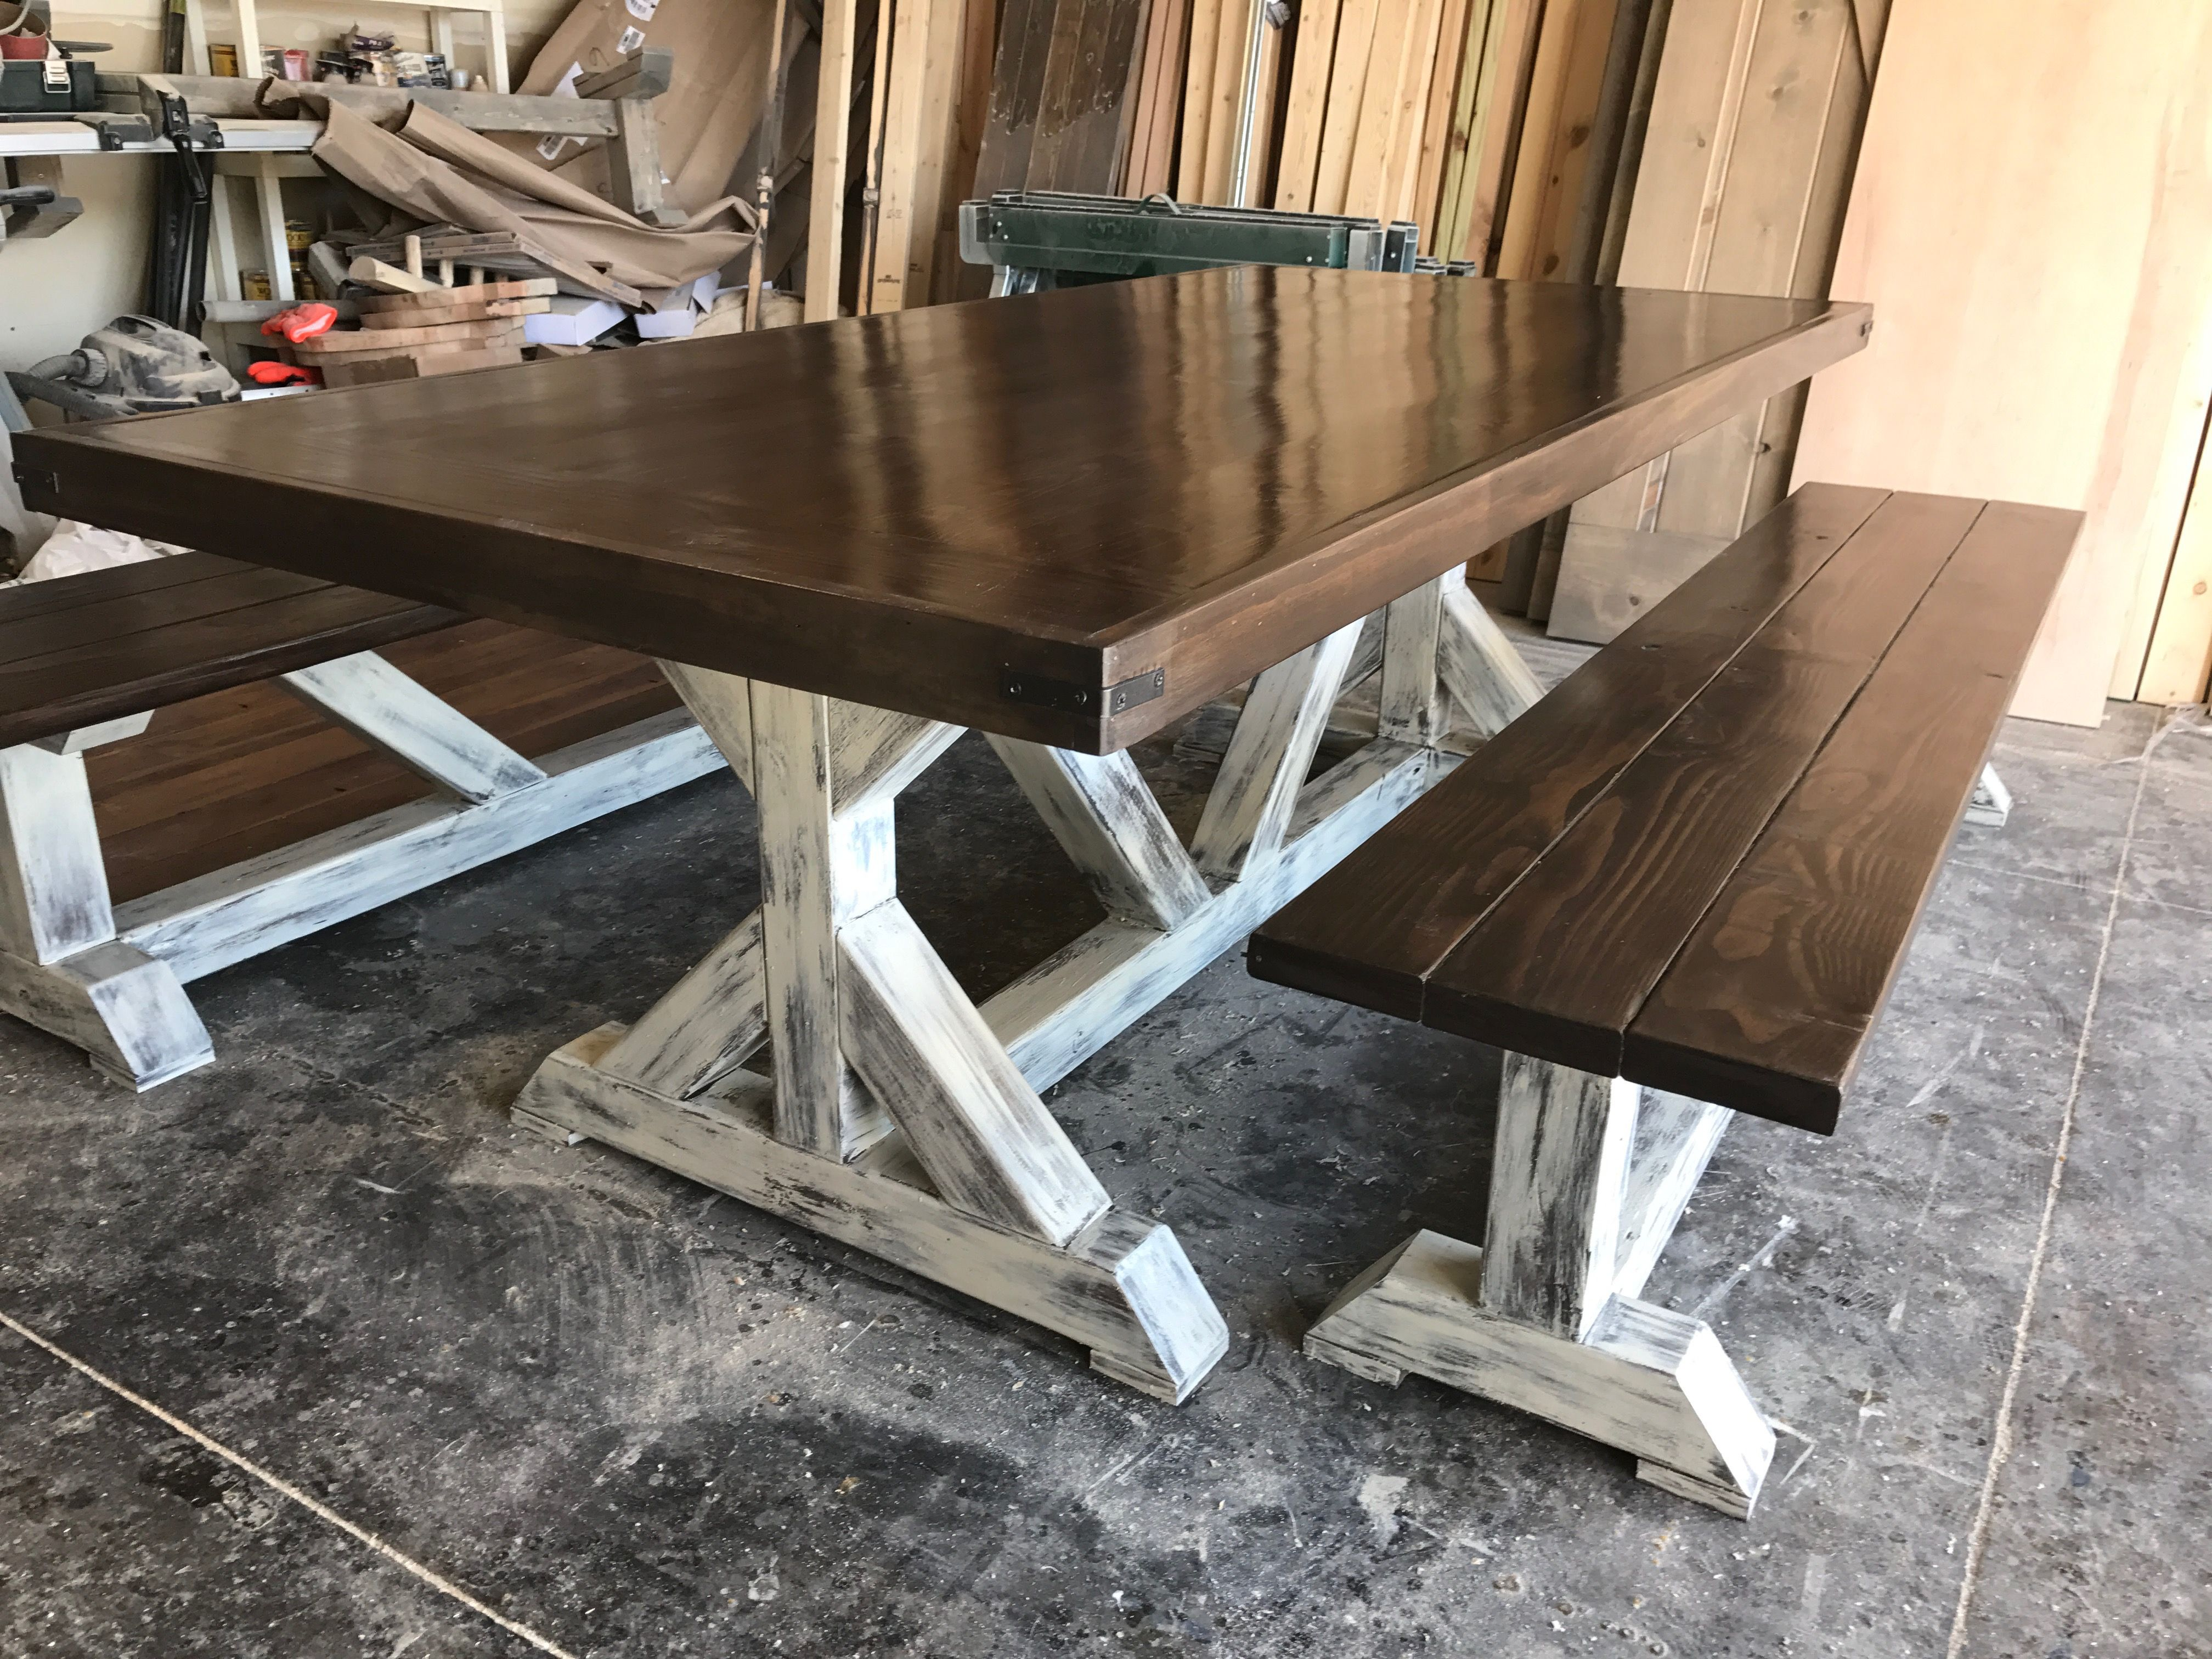 Rustic Farm Table With White Cream Washed Legs And Metal Edges Handcrafted Dining Table Rustic Farm Table Rustic Dining Table Farm table with metal legs